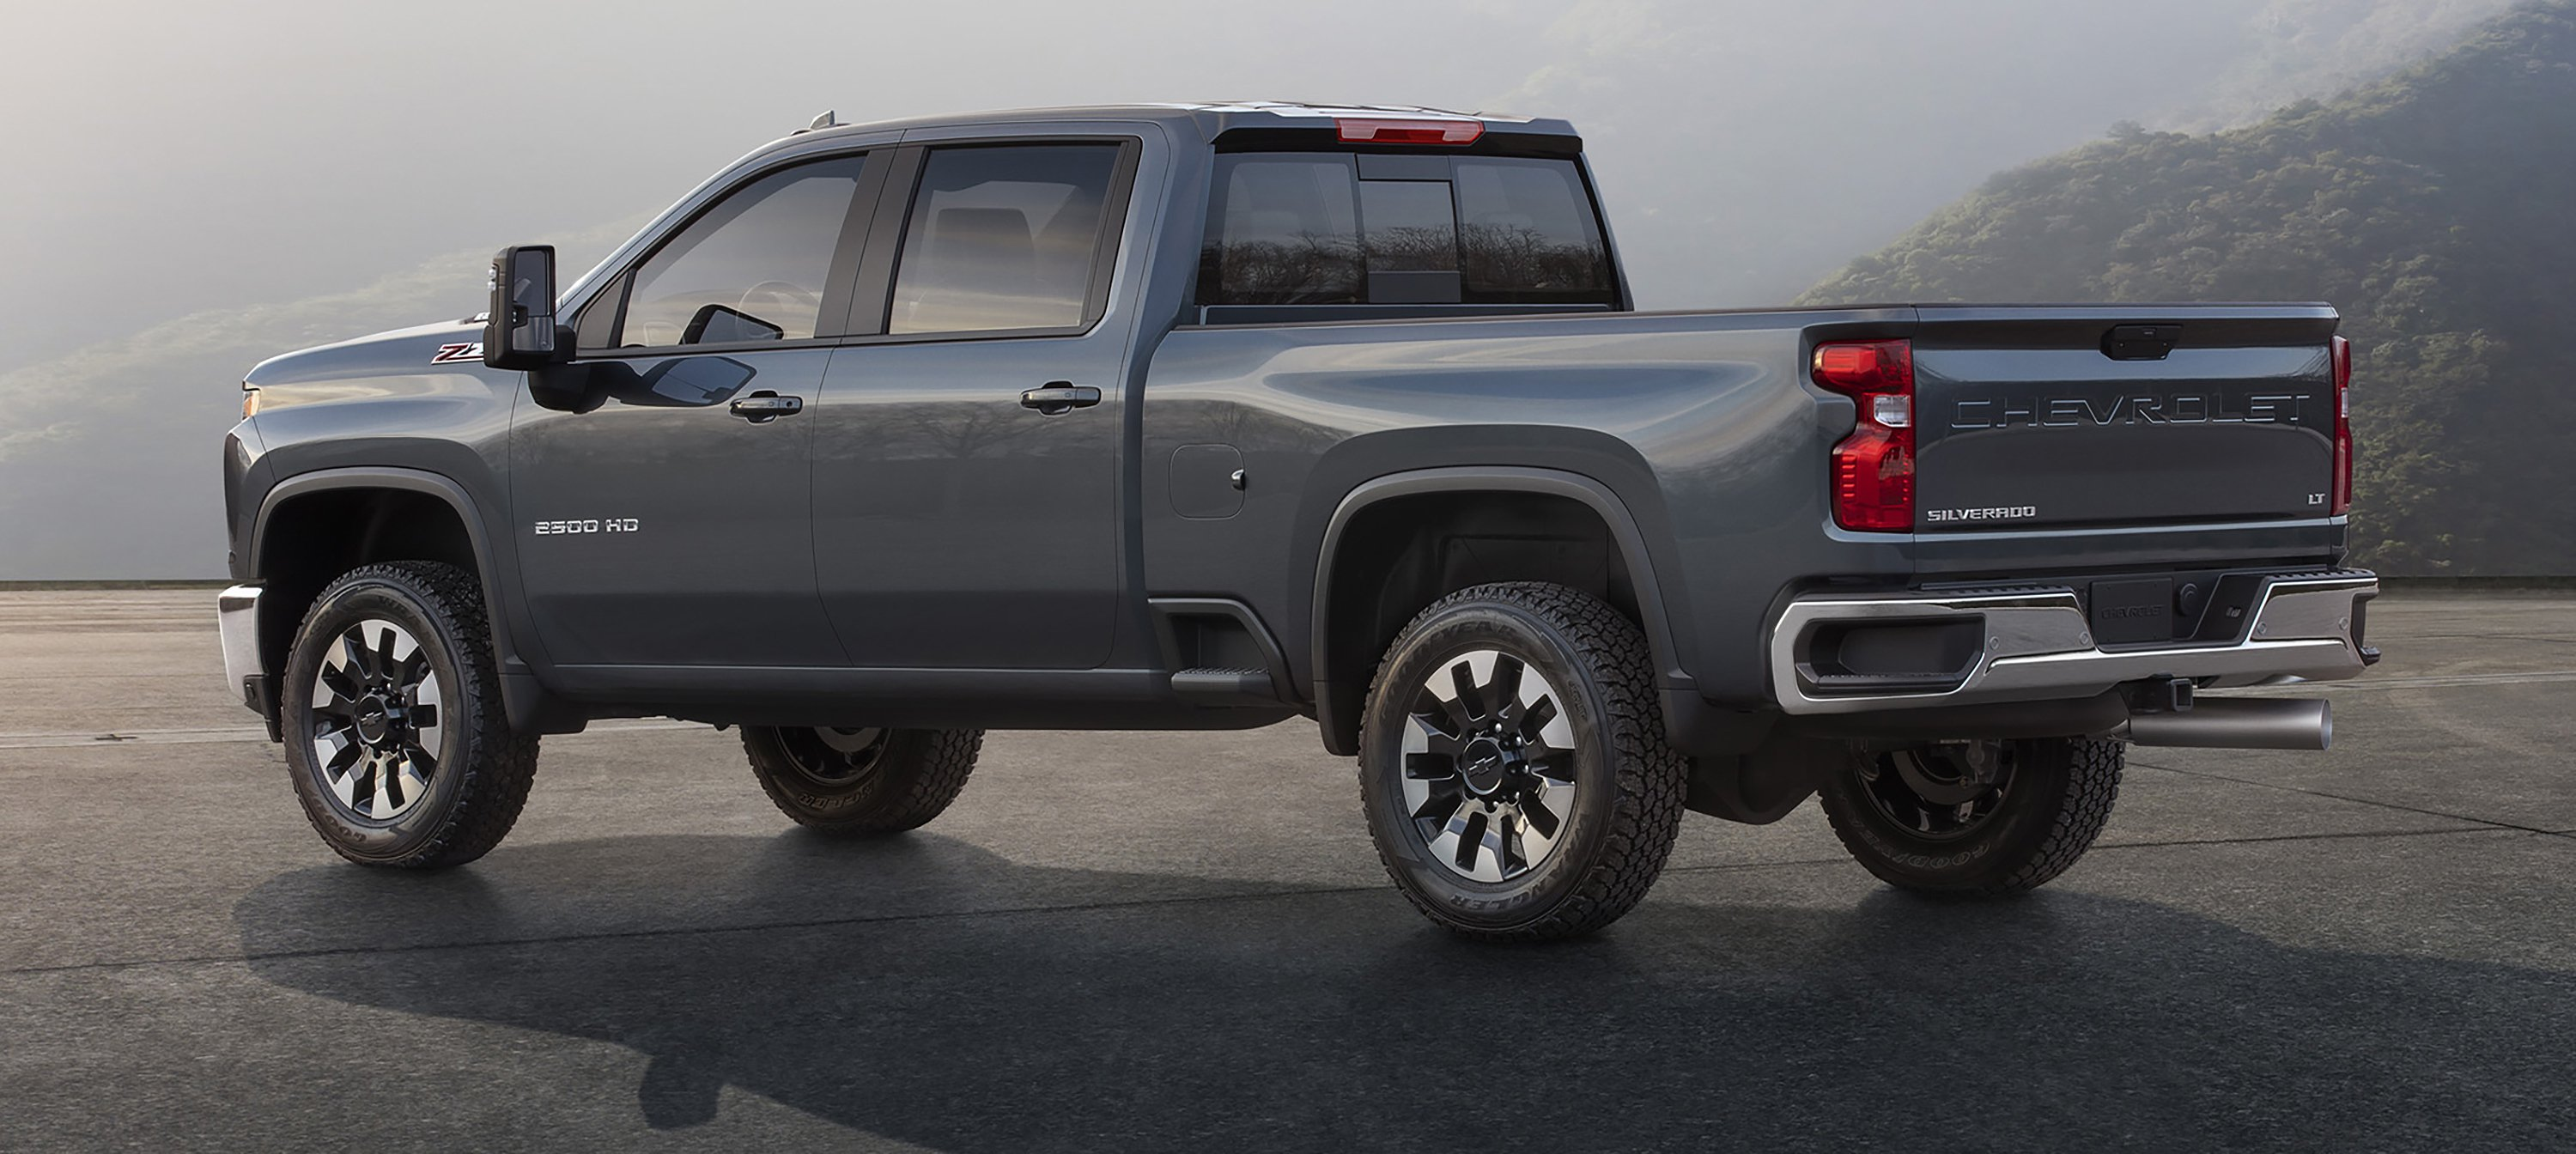 12 Best 2020 Chevrolet Silverado Interior